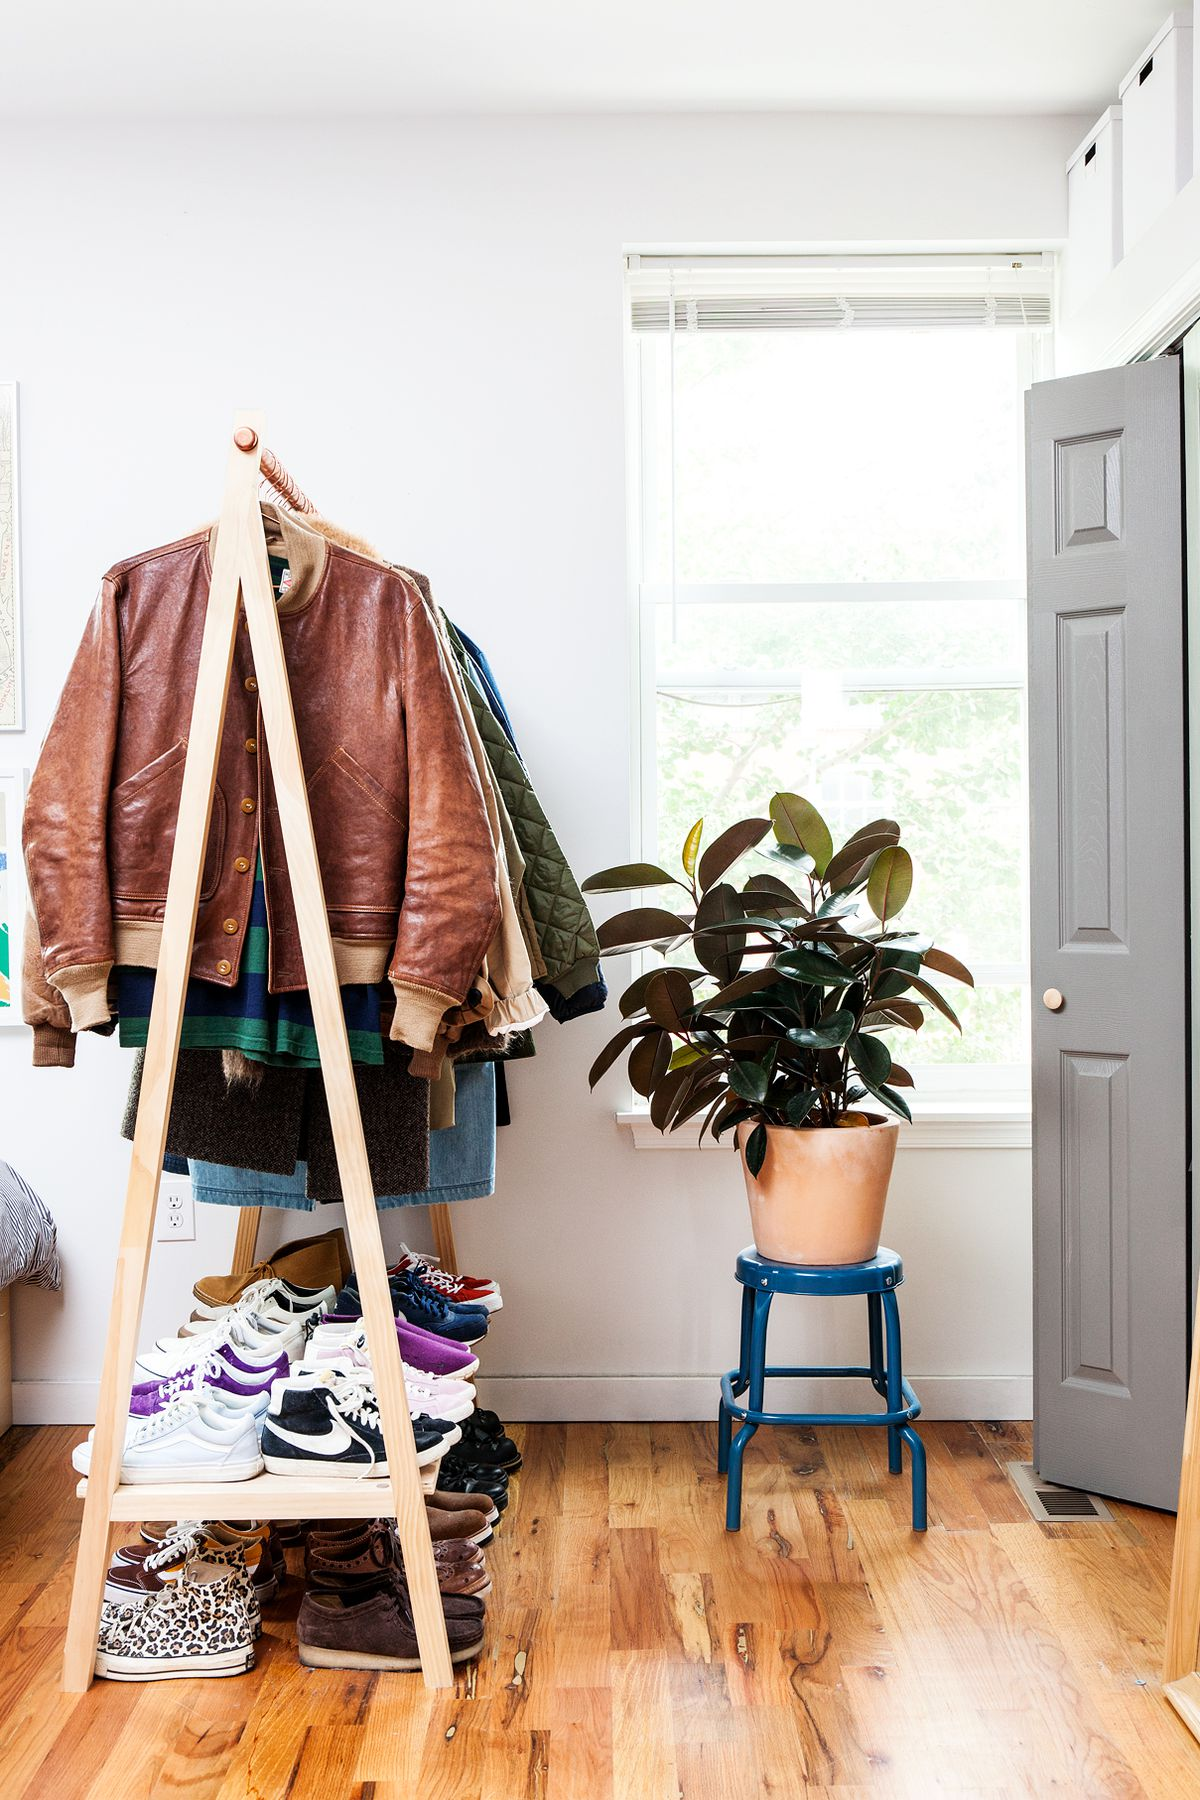 A wooden triangular clothes rack hangs by a window. A large plant sits on a blue stool nearby.